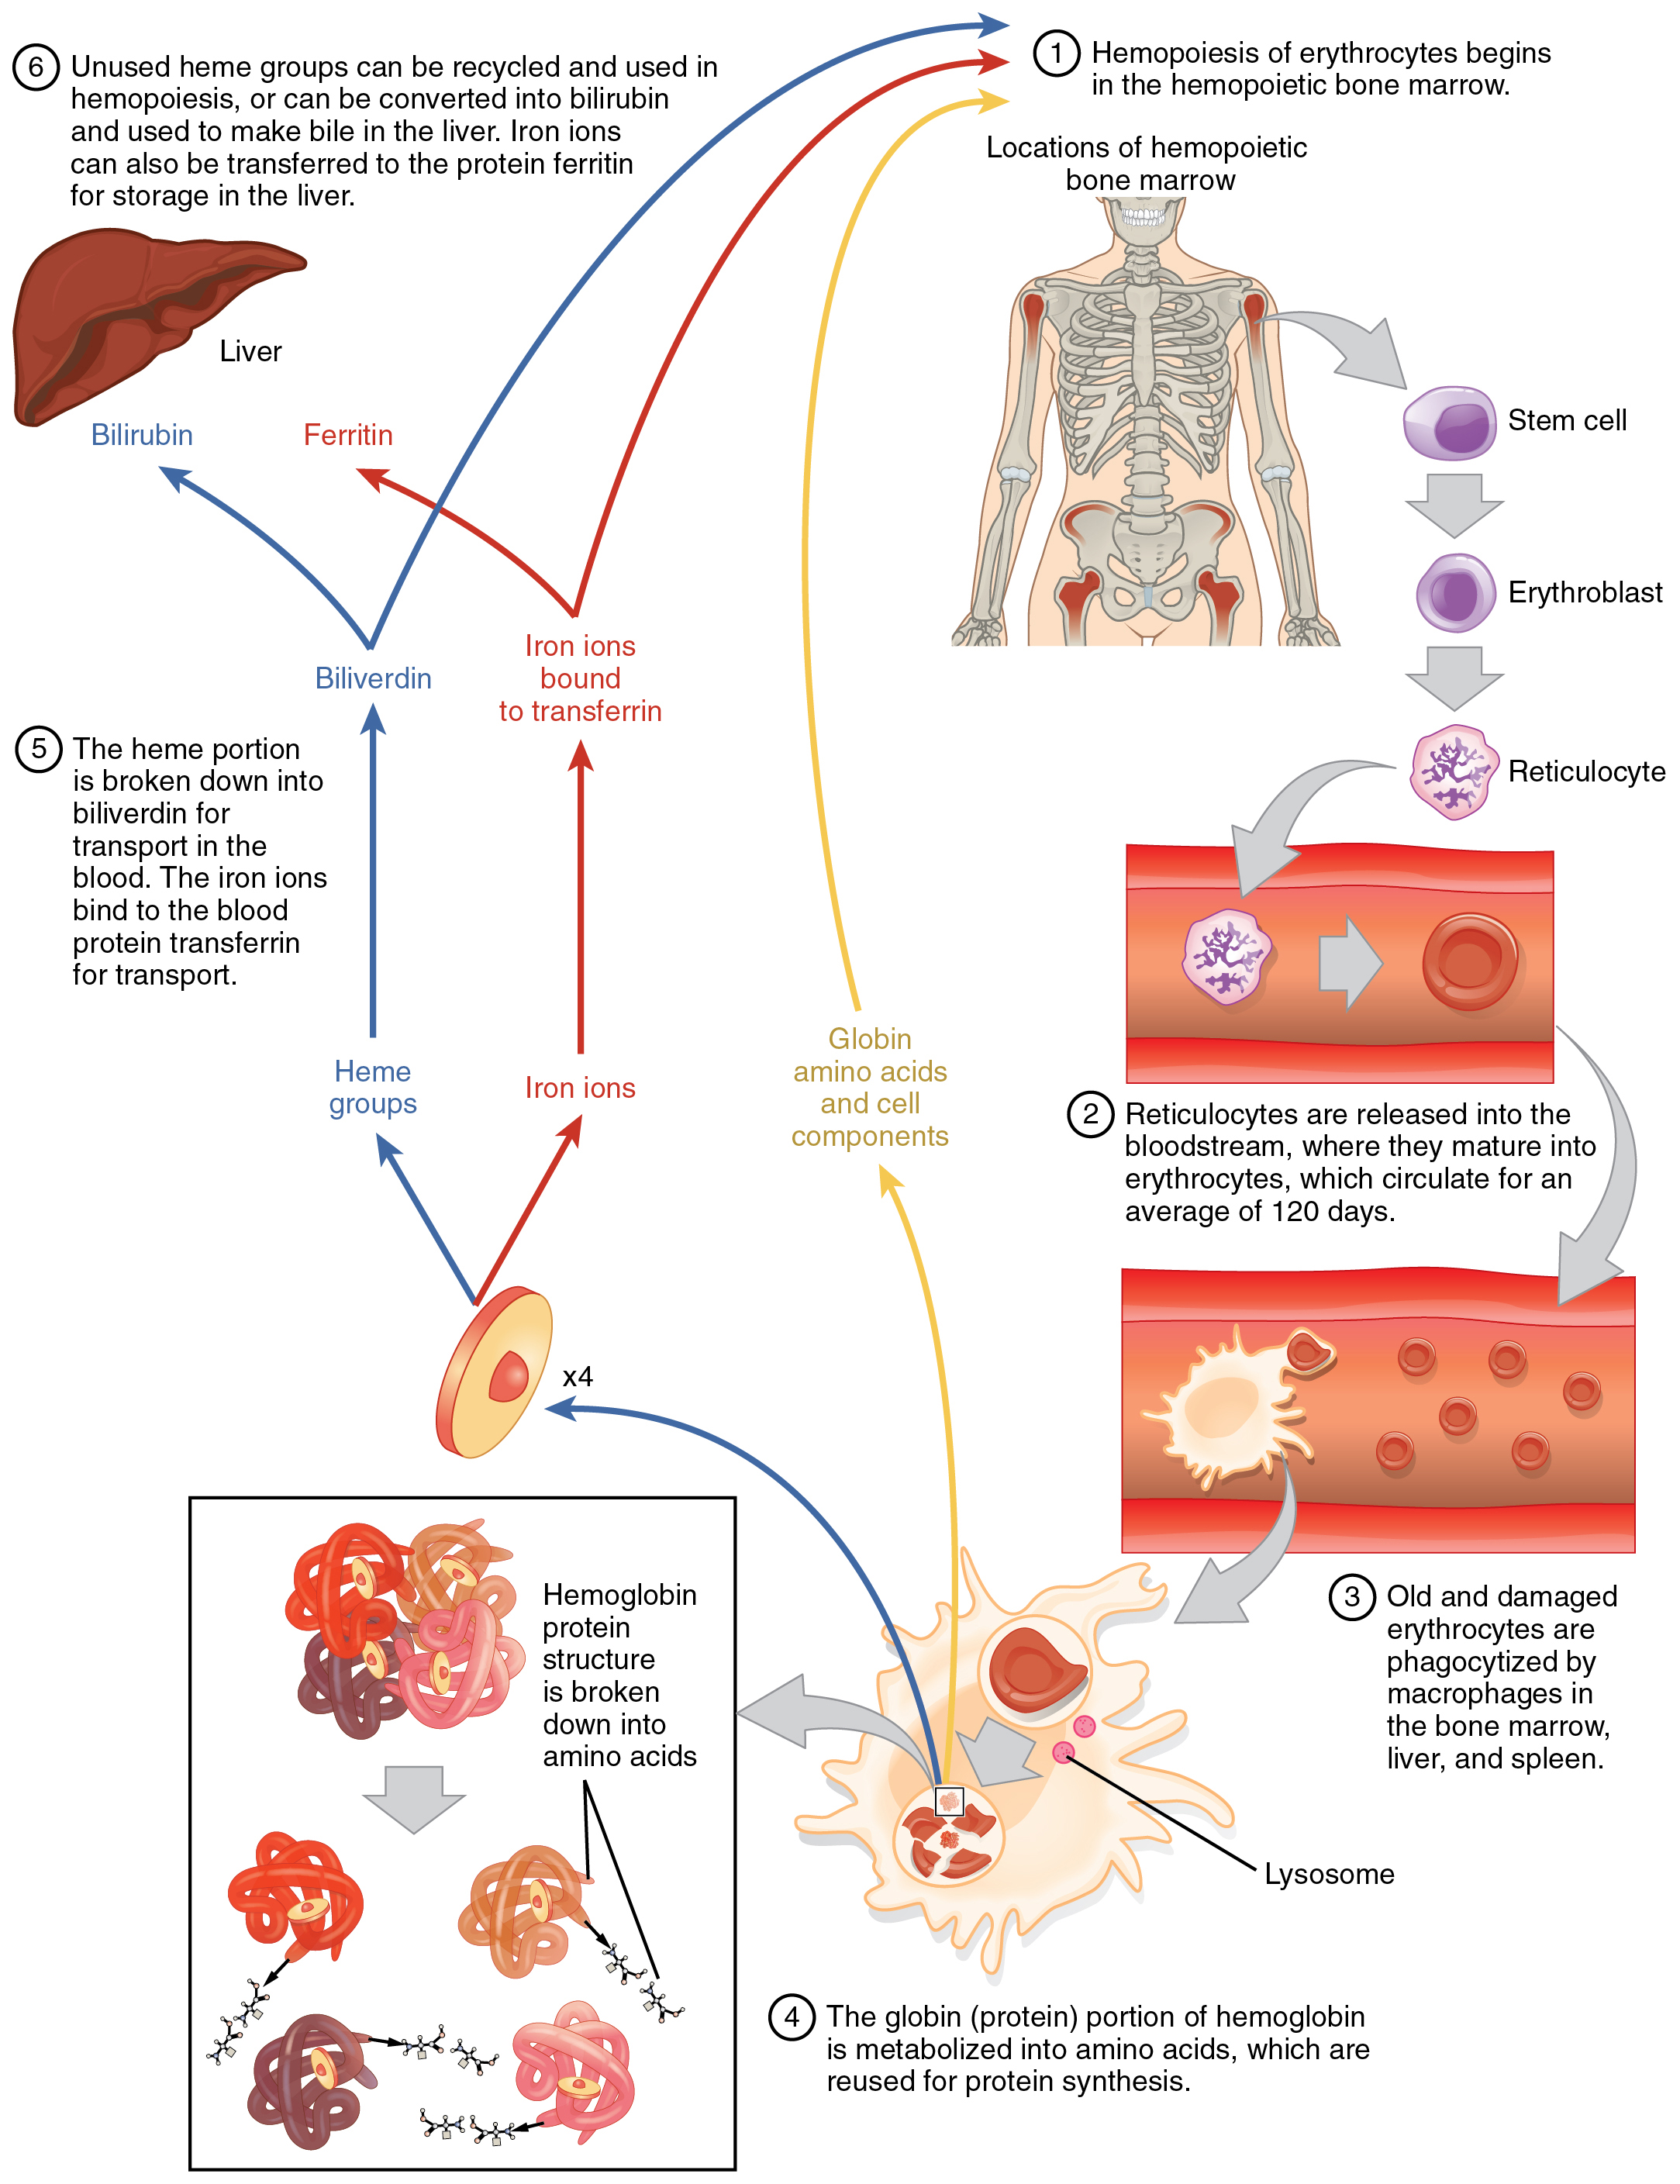 Erythrocytes anatomy and physiology erythrocytes are produced in the bone marrow and sent into the circulation at the end of their lifecycle they are destroyed by macrophages nvjuhfo Image collections